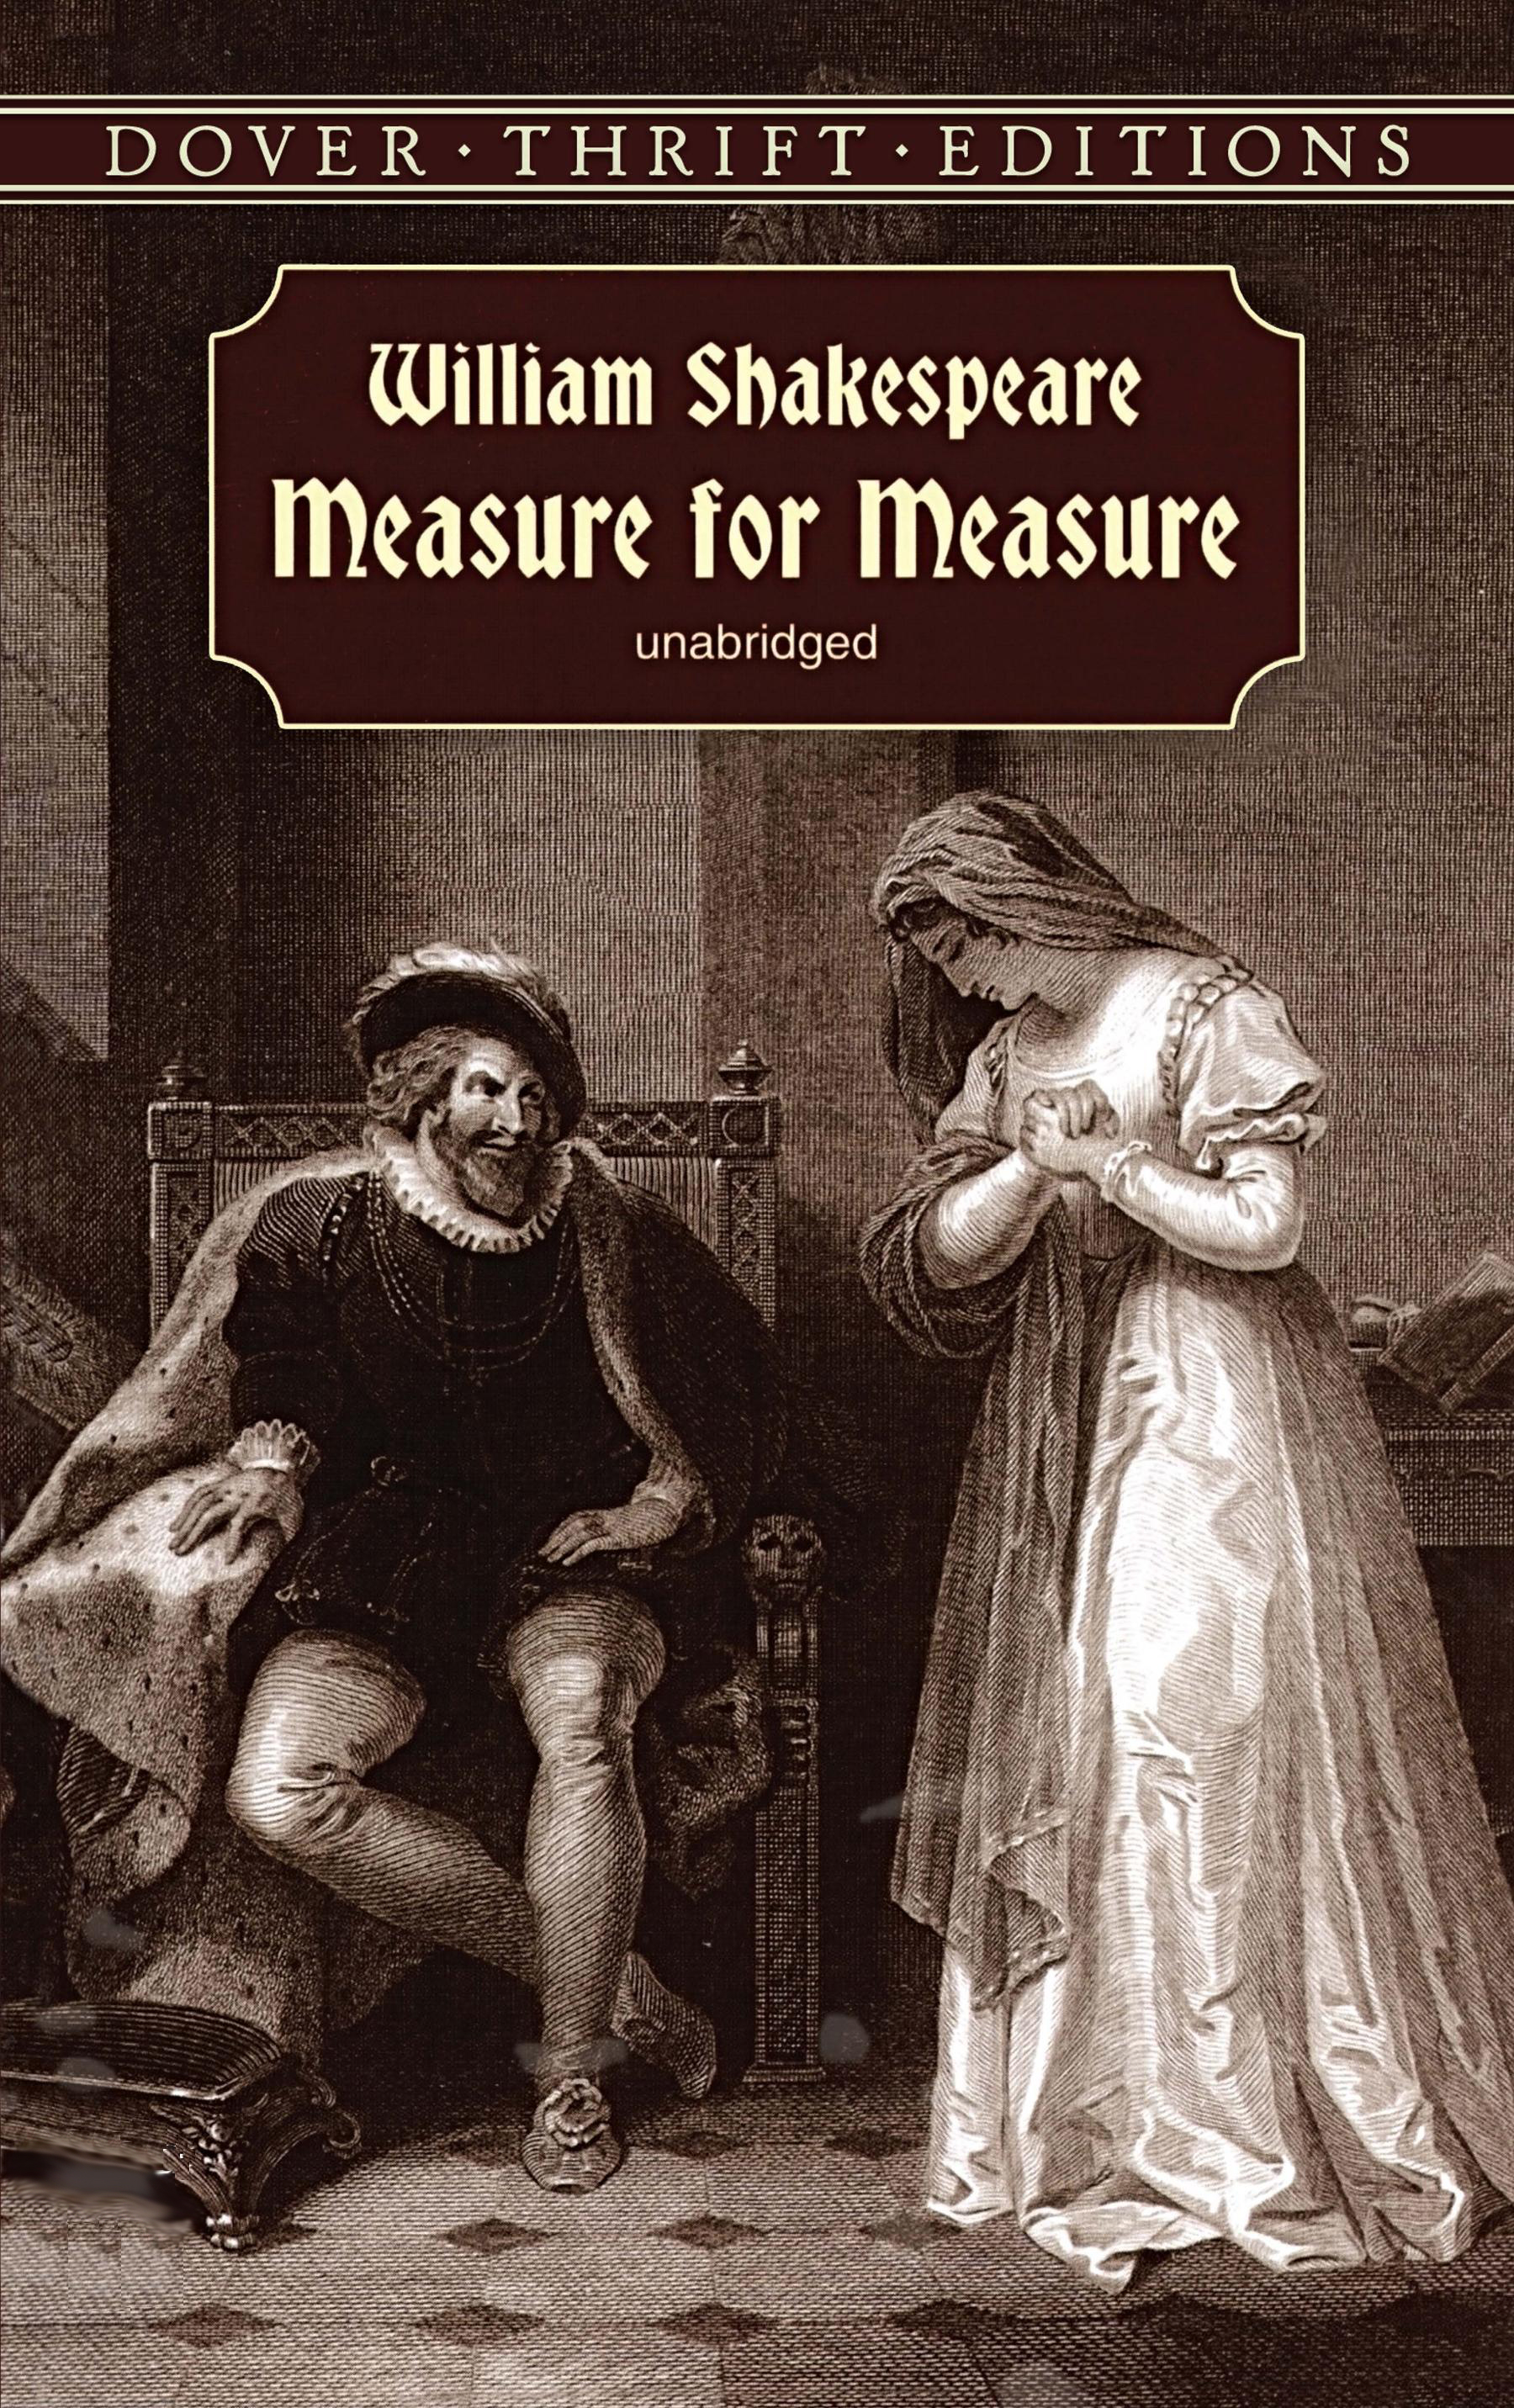 measure for measure by william shakespeare essay